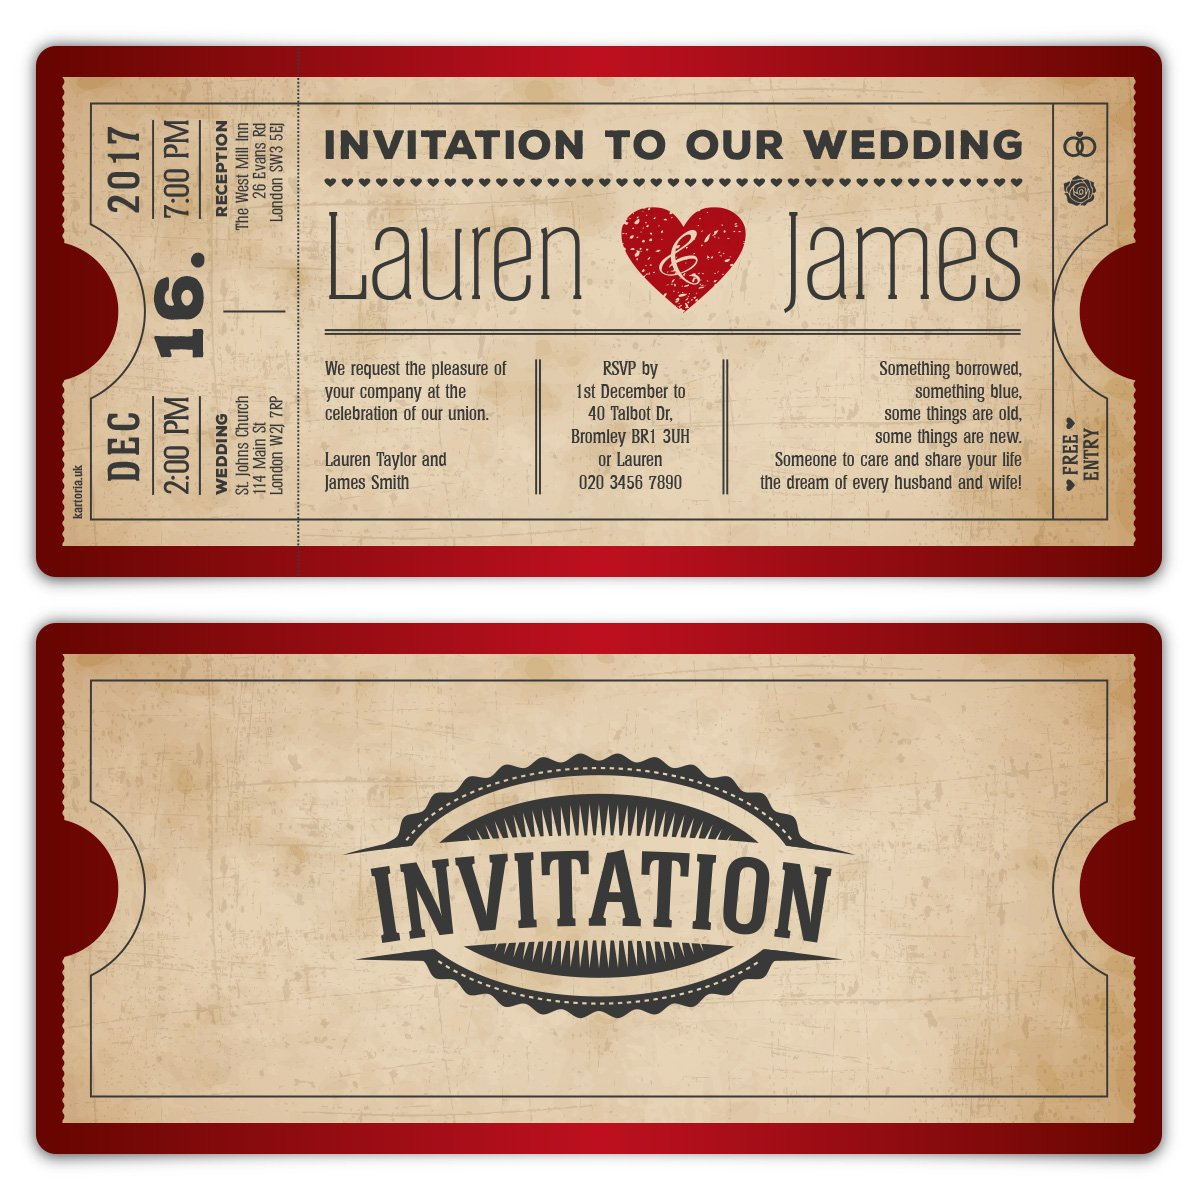 100 x Wedding Invitation Cards Invite - Red Vintage Heart Cinema ...